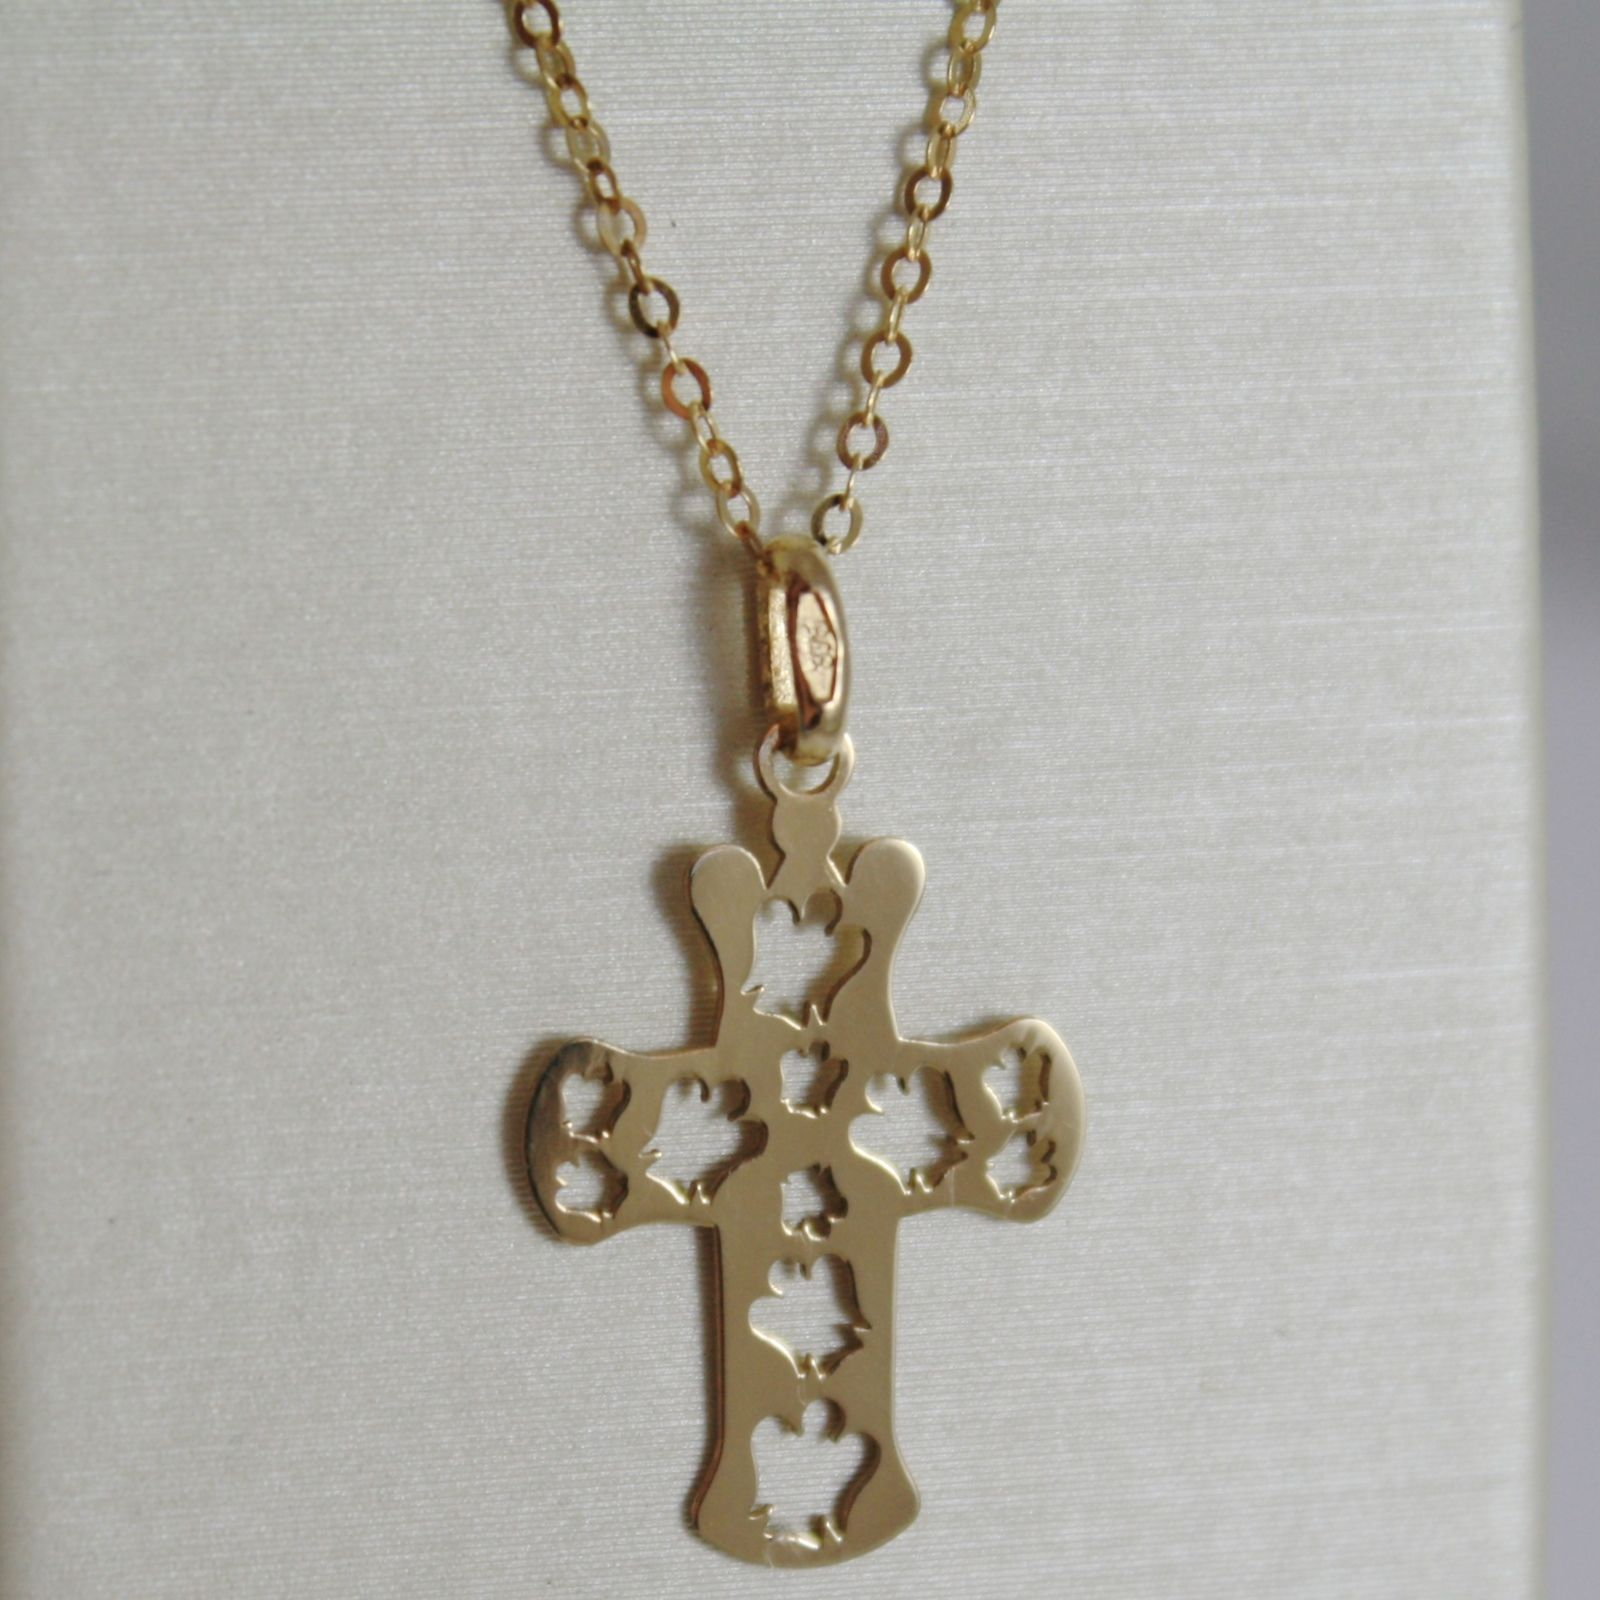 ROBERTO GIANNOTTI 9K YELLOW GOLD NECKLACE WITH ANGEL CROSS PENDANT MADE IN ITALY